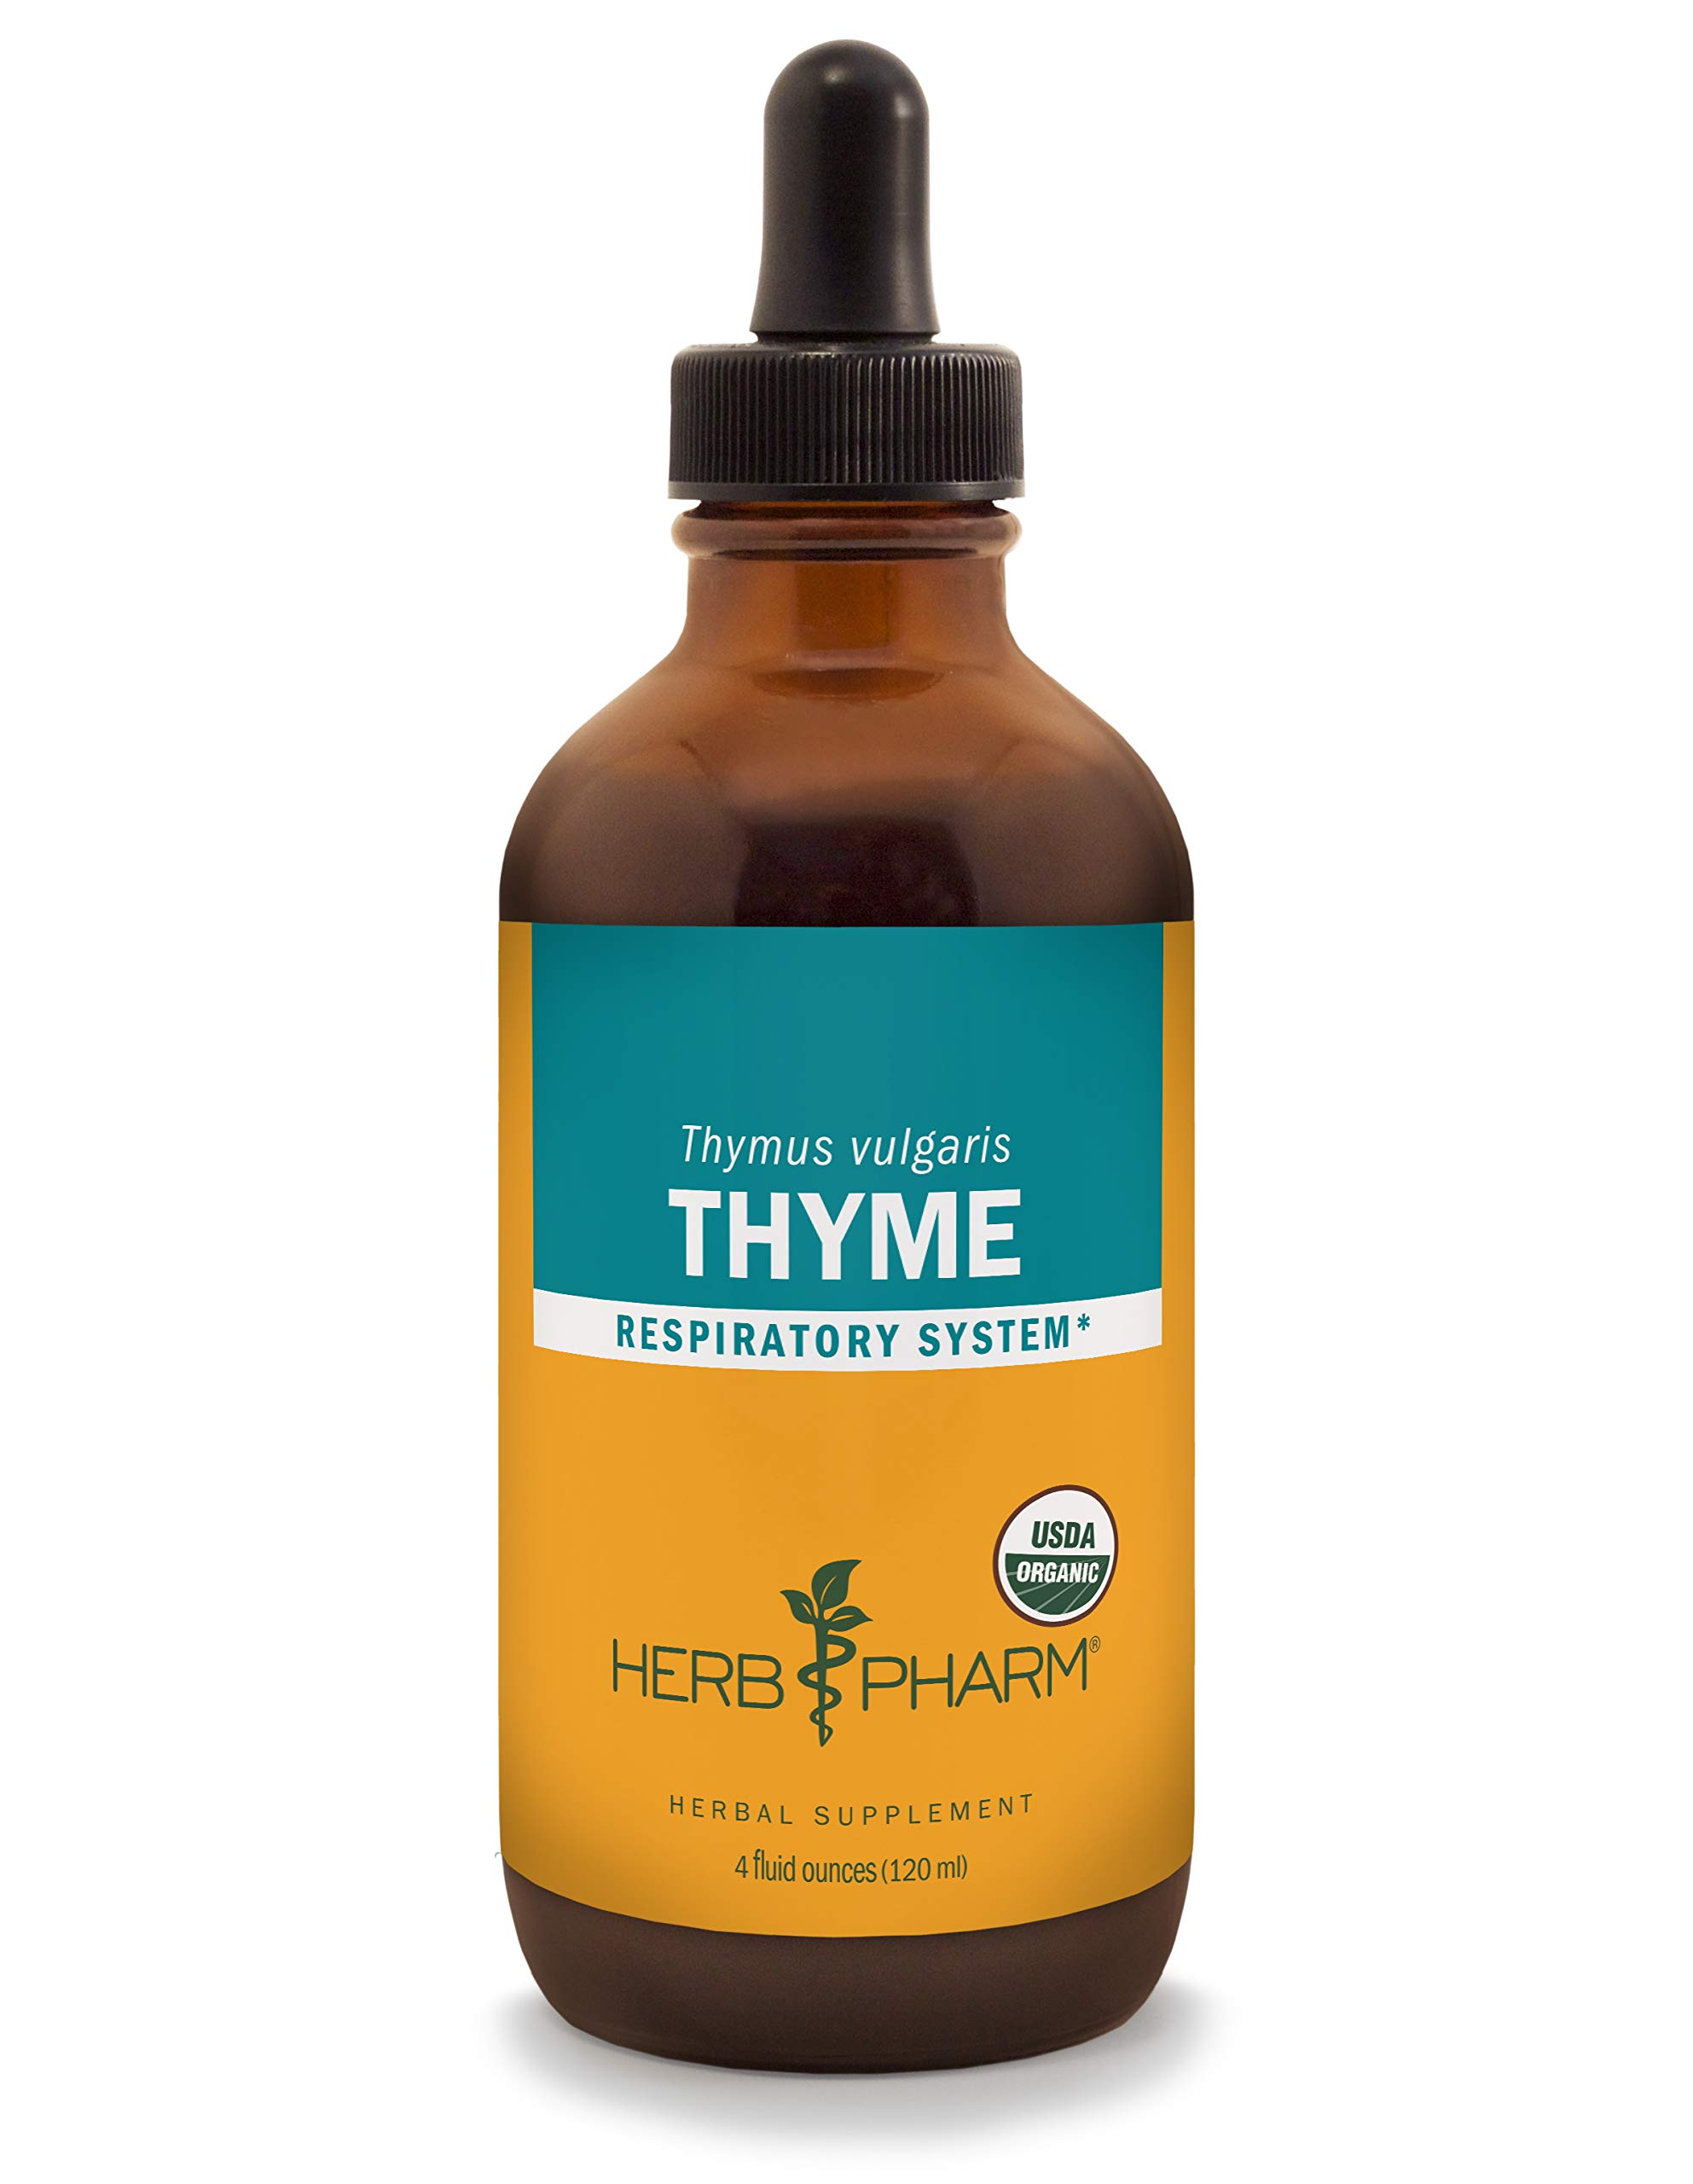 Herb Pharm Certified Organic Thyme Liquid Extract for Respiratory System Support - 4 Ounce